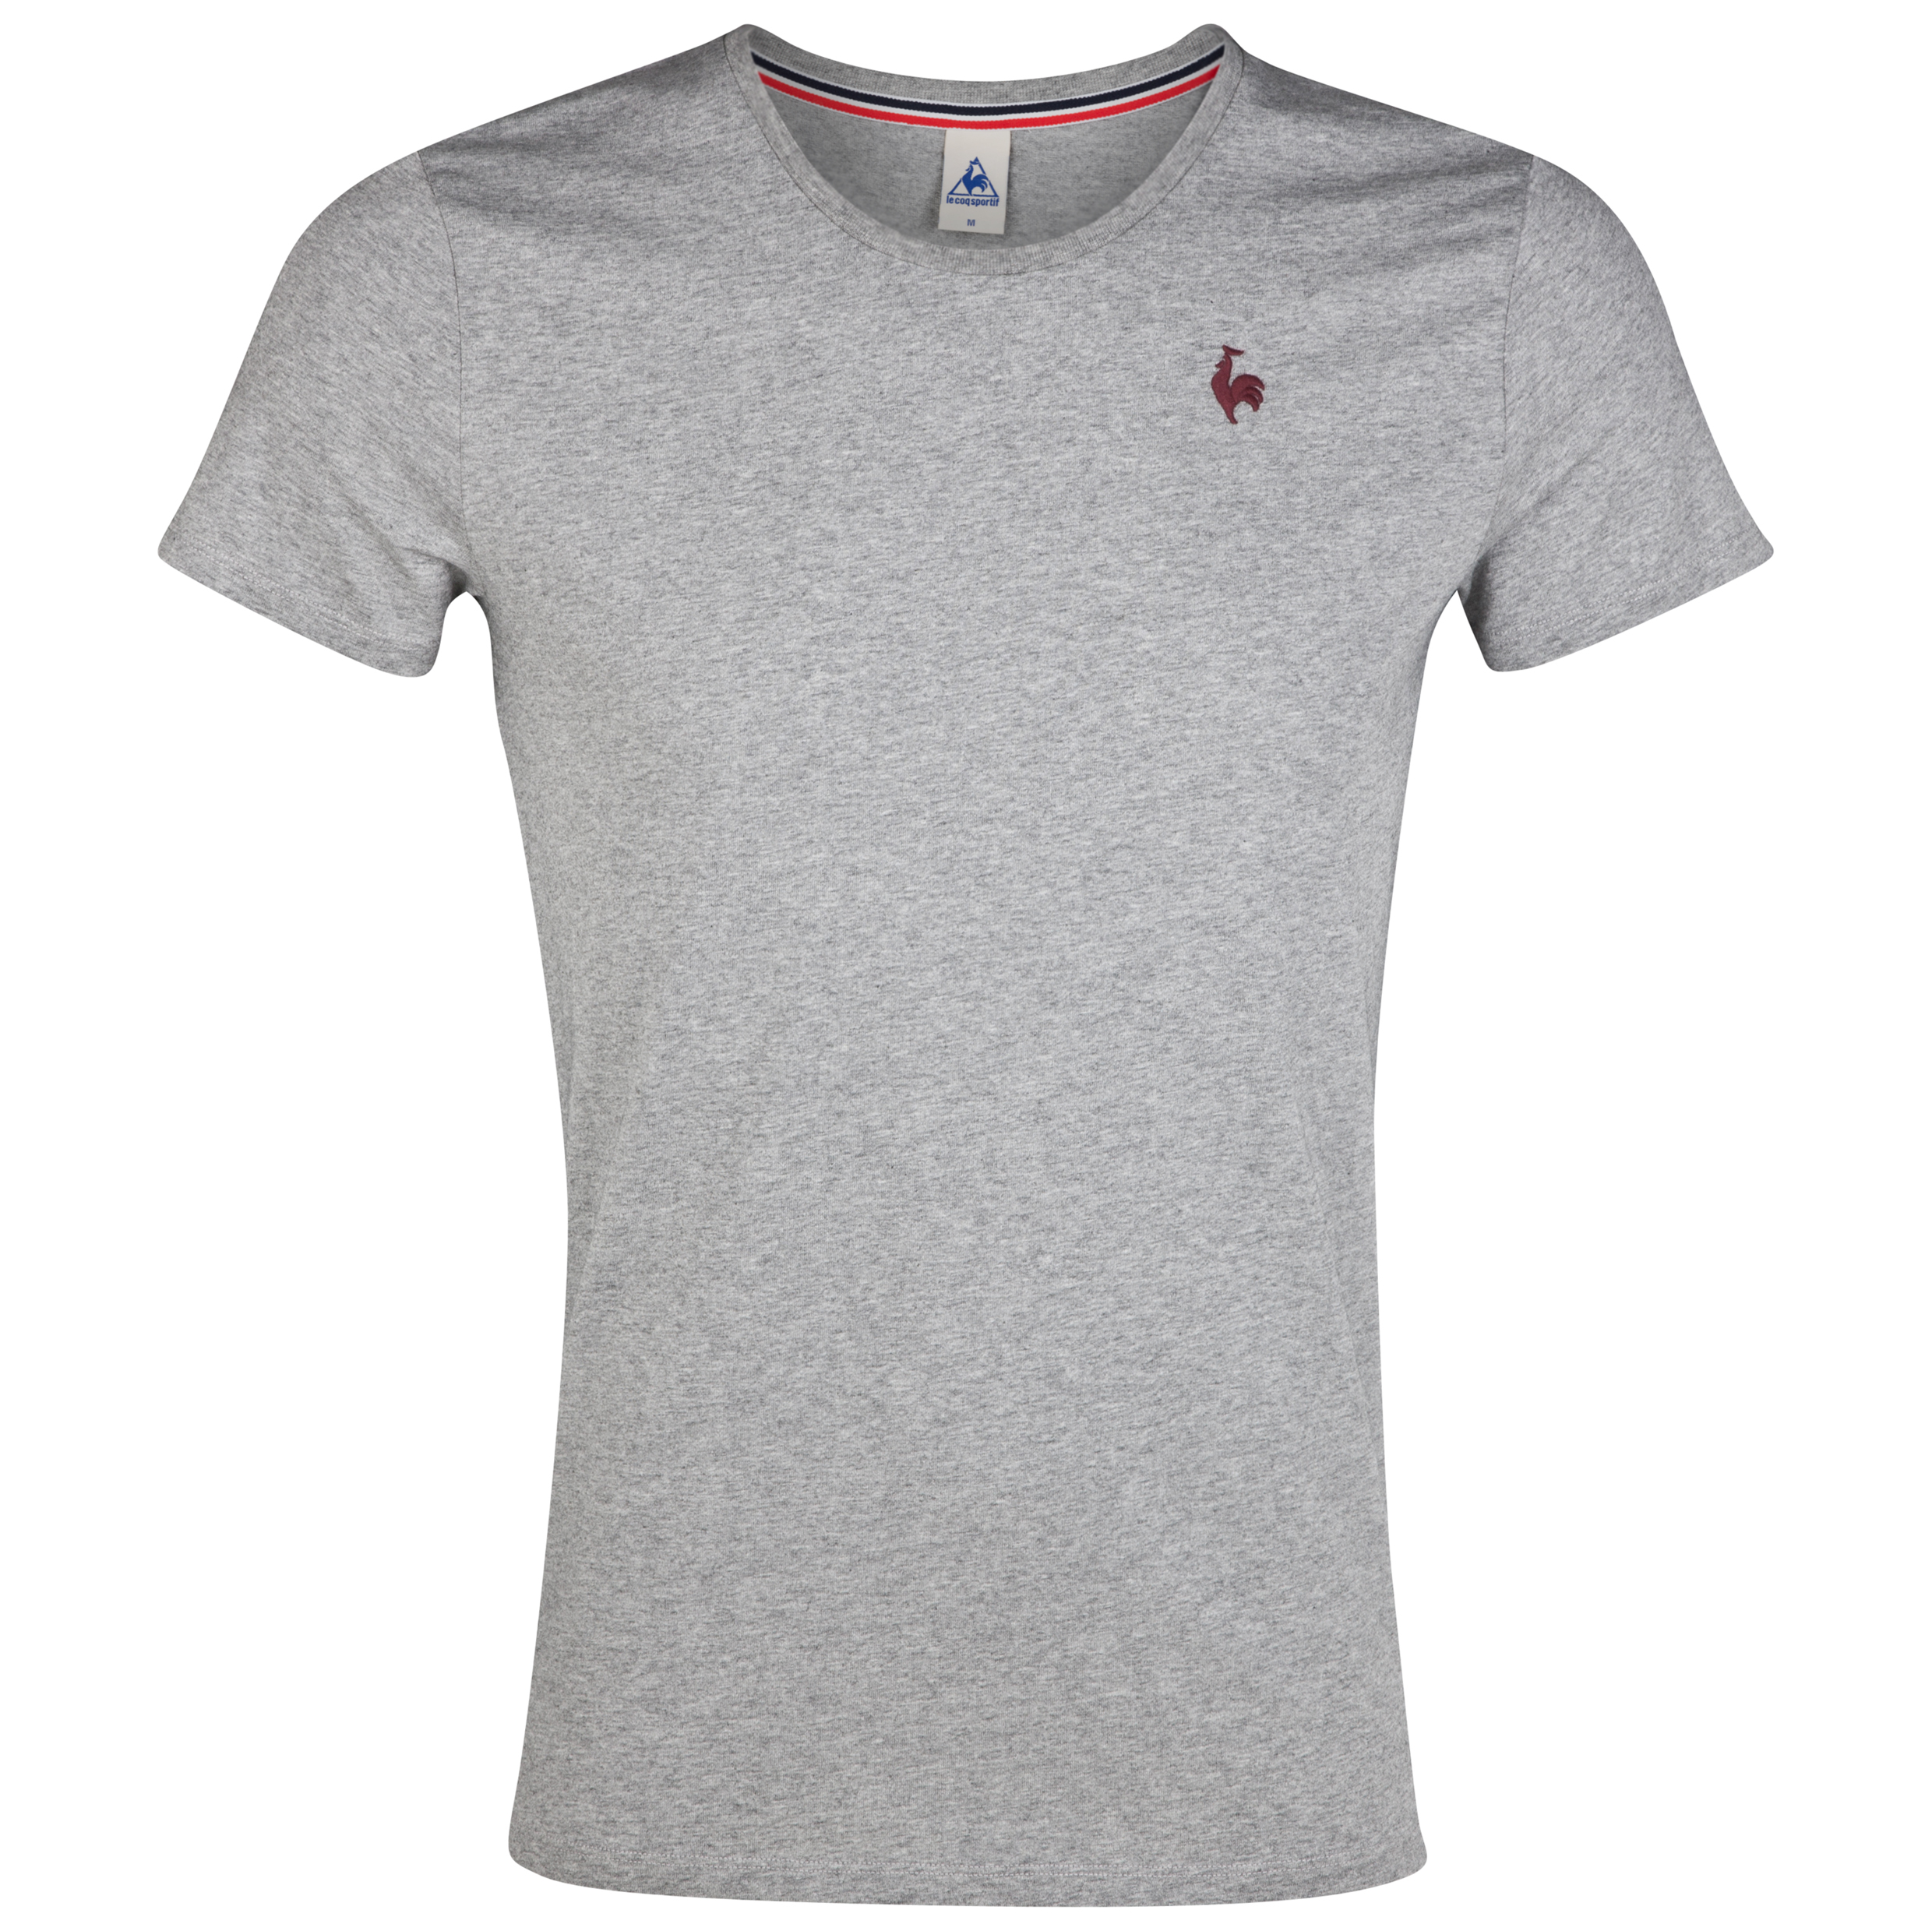 Le Coq Sportif T-Shirt - Light Heather Grey